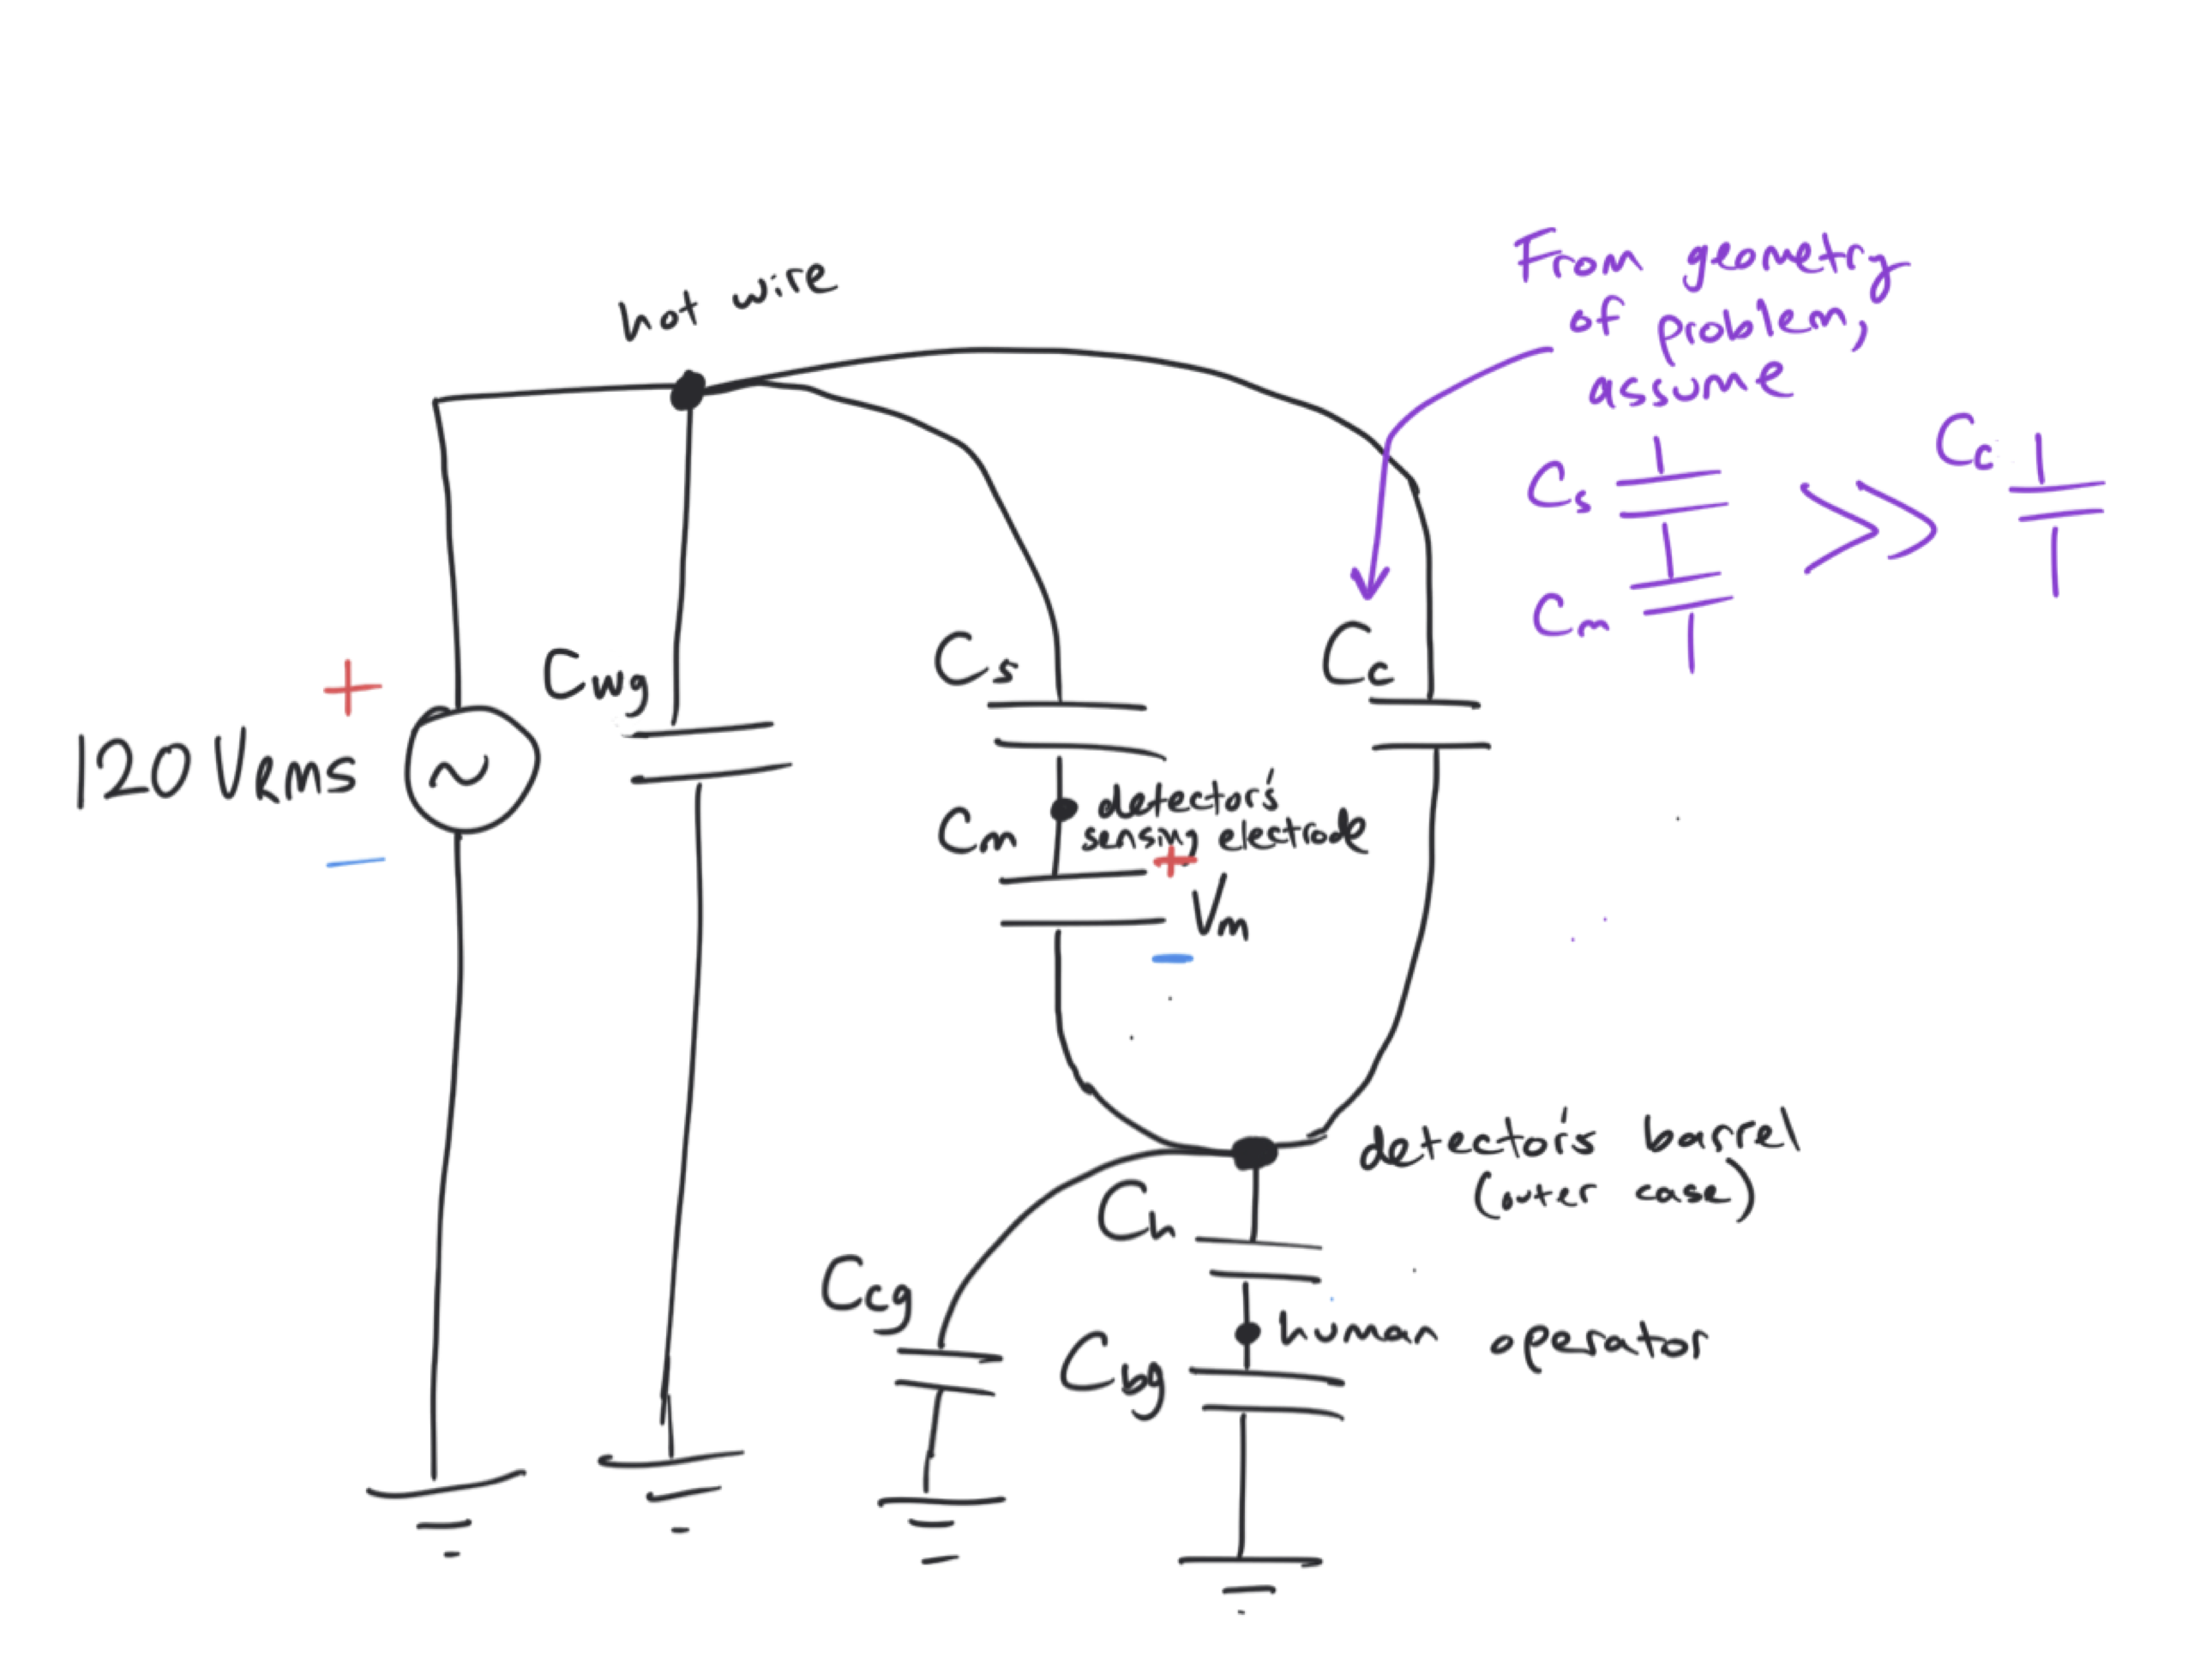 Non Contact Voltage Detector Assignment Contactless Ac Mains Circuit Diagram Re Drawn Simplified Block To Look More Like A Conventional Schematic Cartoon Drawings Are Removed Pic